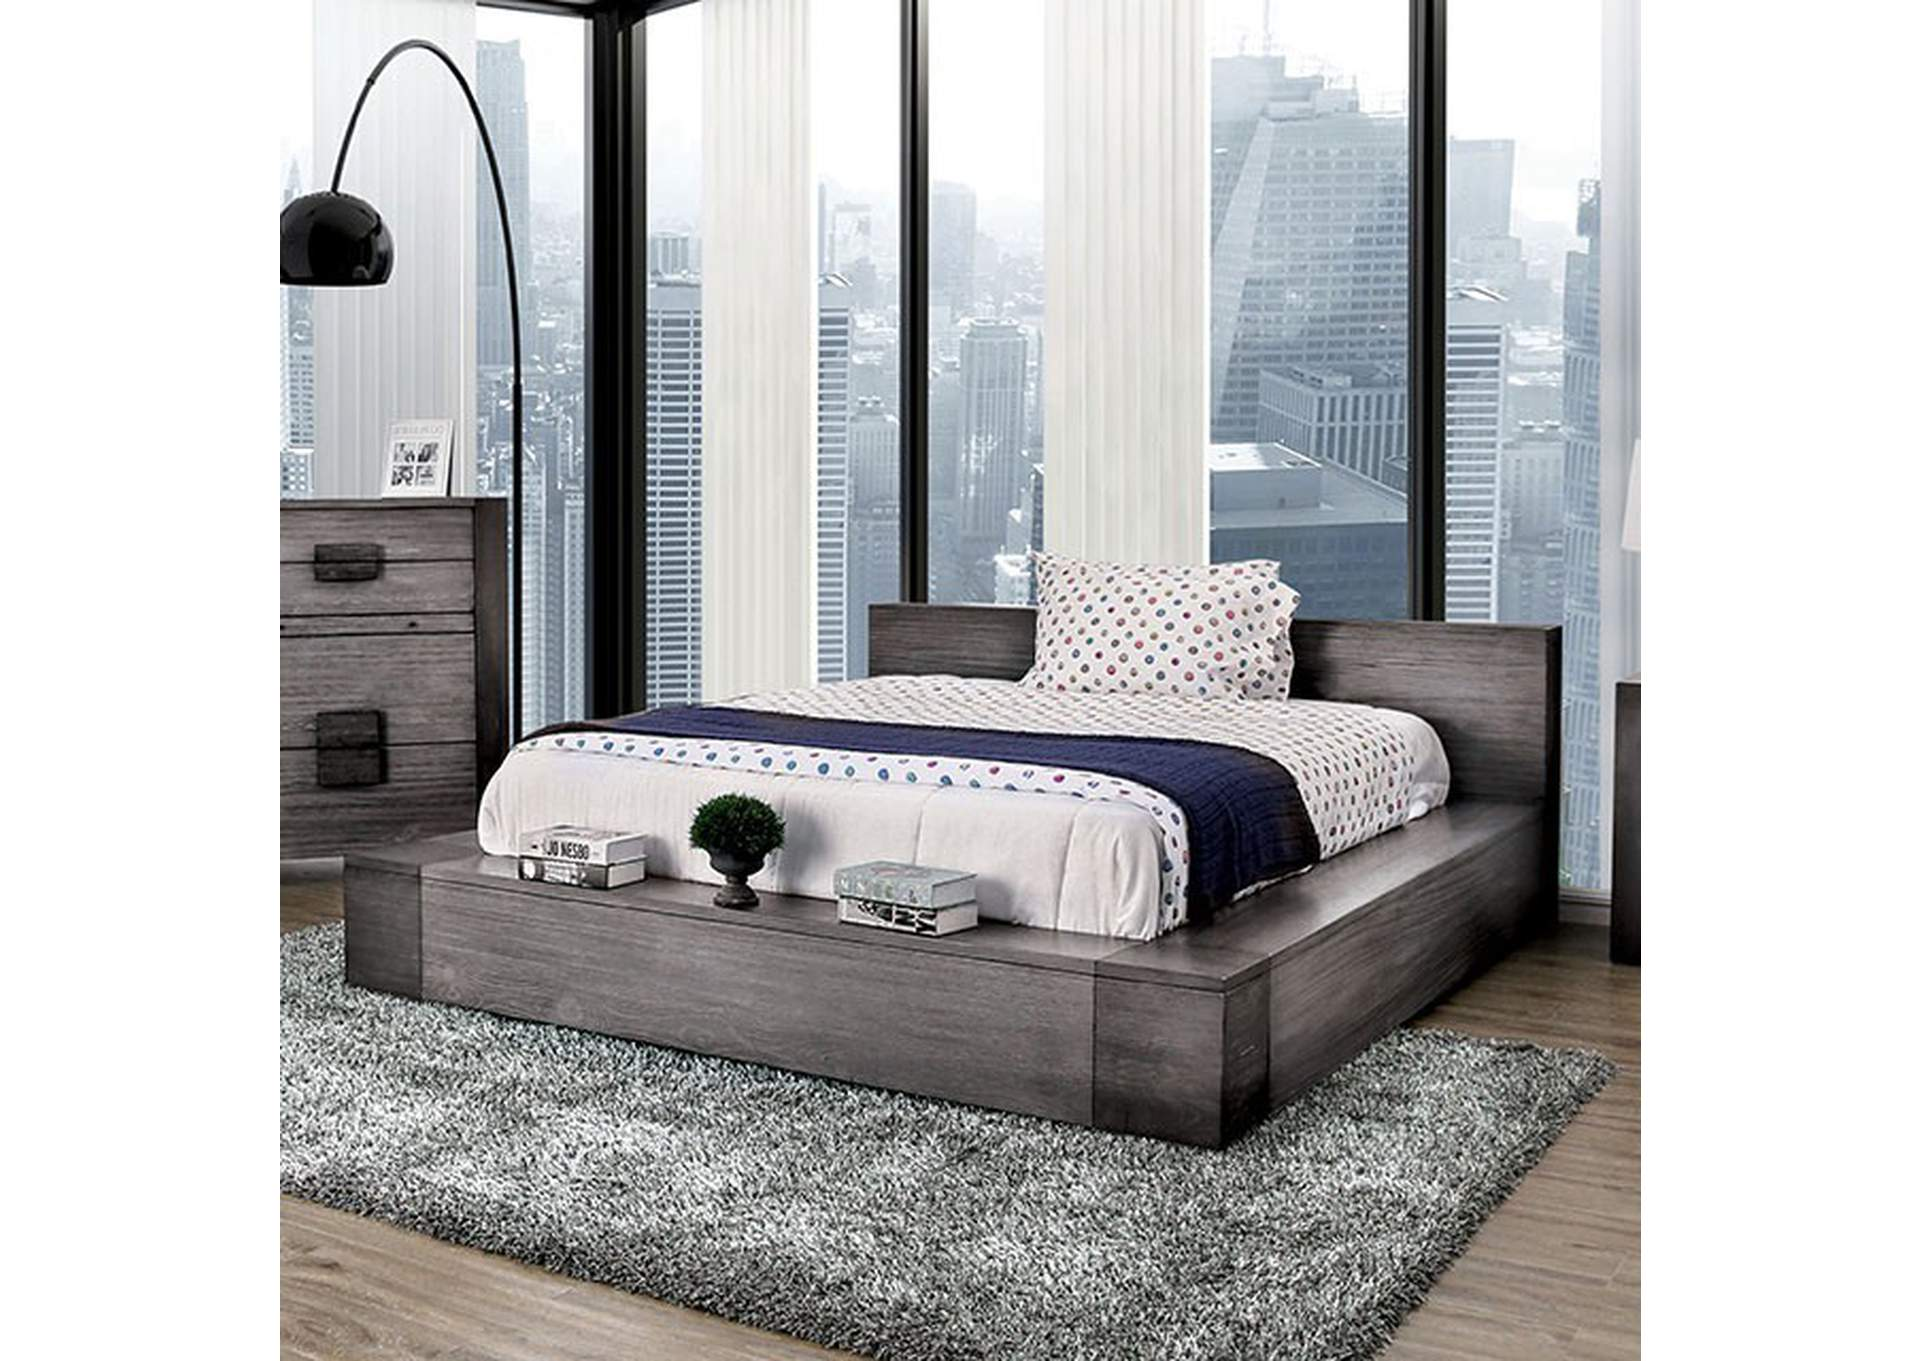 Janeiro Gray California King Platform Bed,Furniture of America